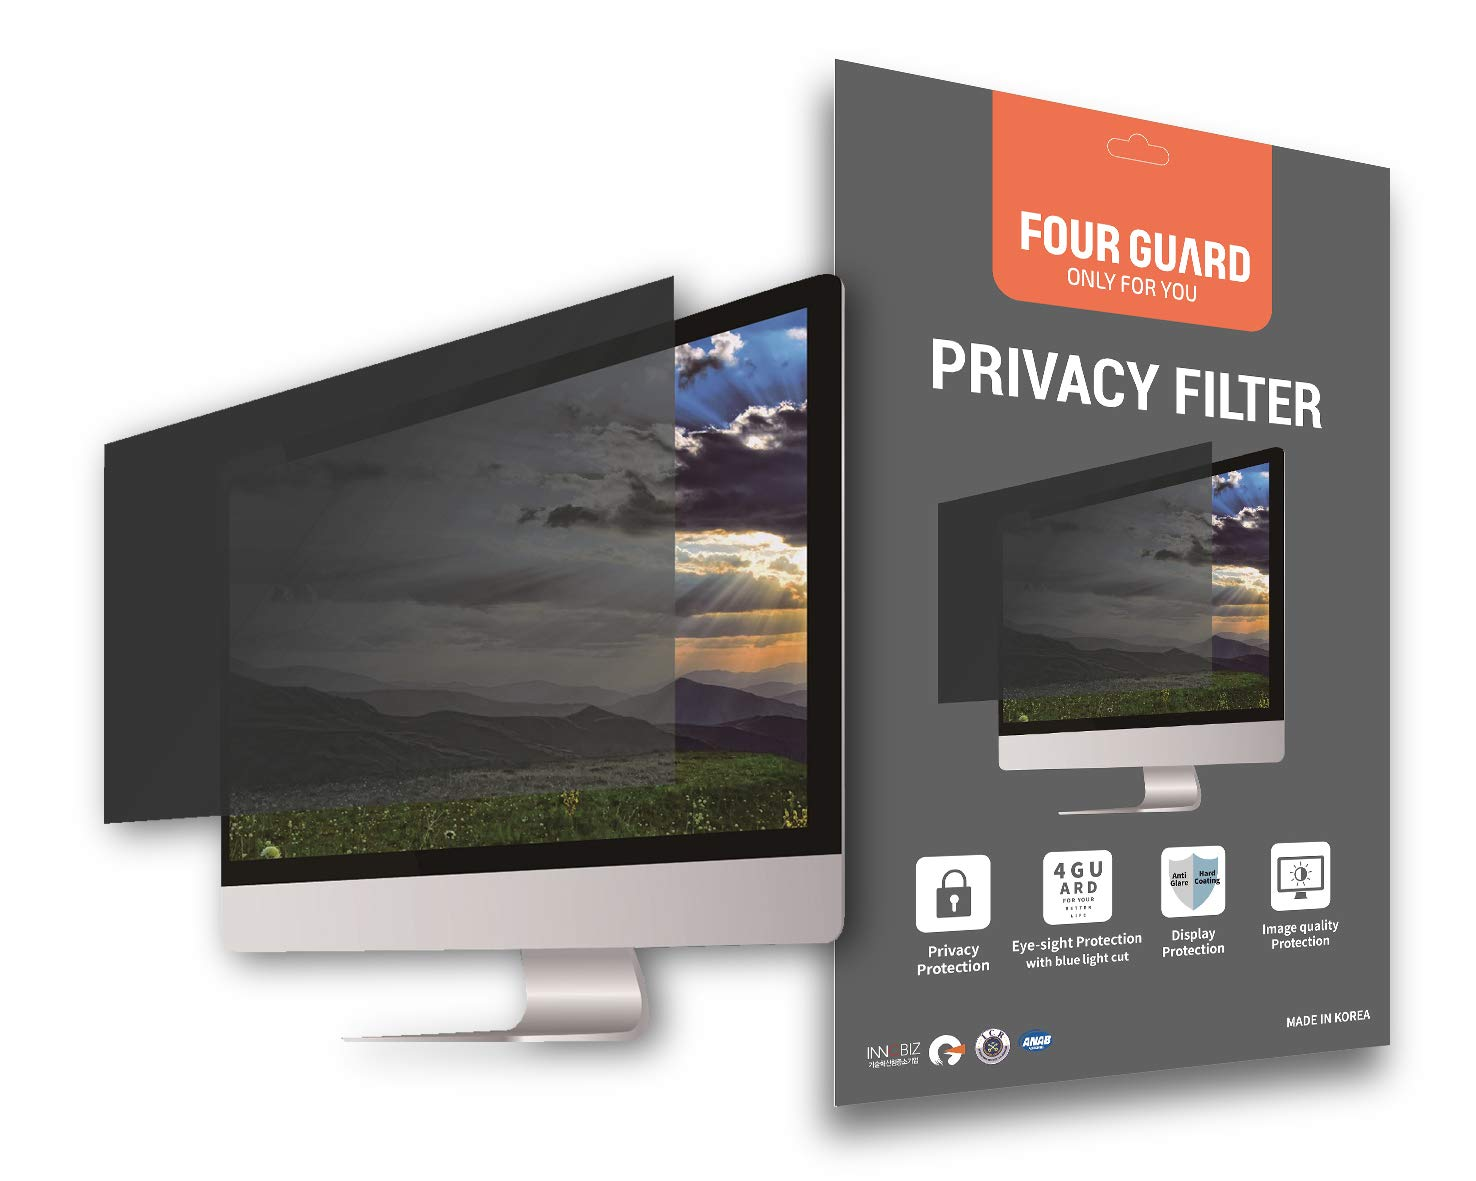 Four Guard Privacy Screen Filter for Computer Monitor Laptop-Notebook 17.3 Inch 16:9 Widescreen - Privacy Protection Blue Light Reduction Anti Glare Anti Scratch Protector Film